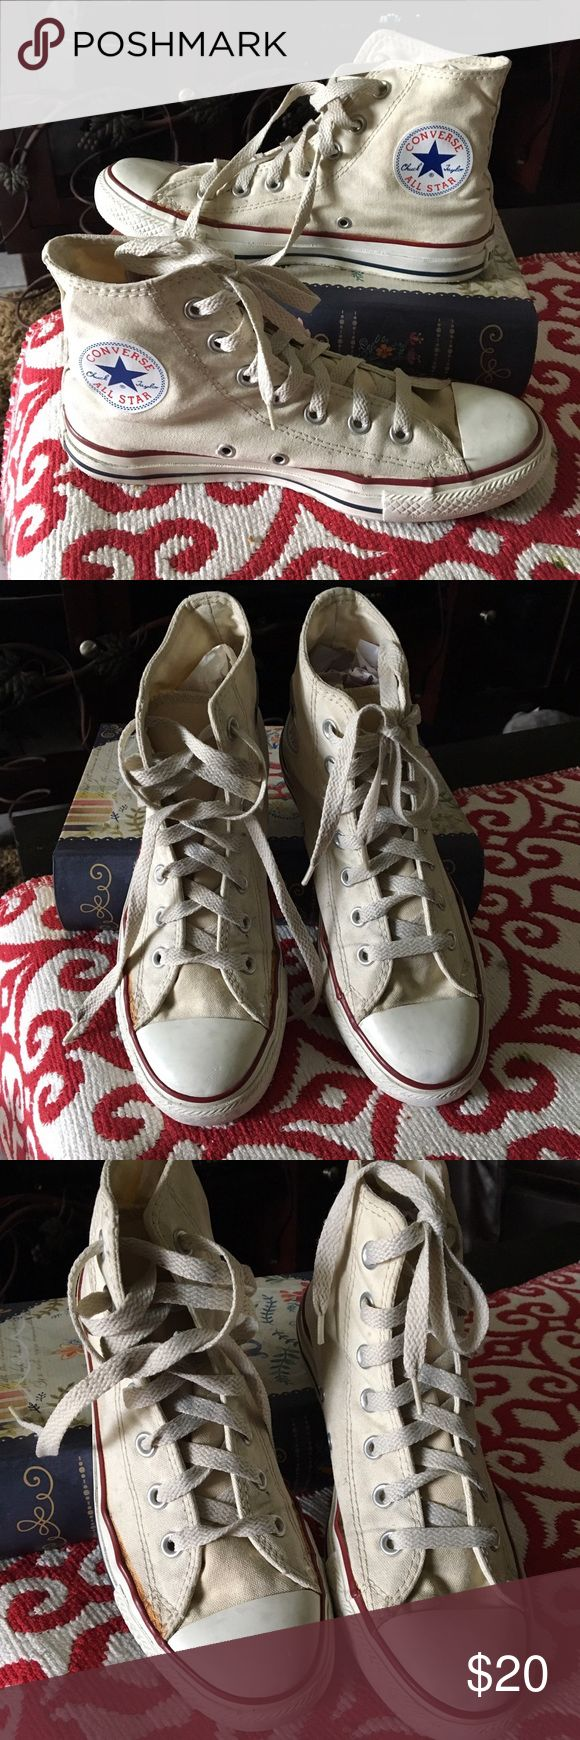 Converse Sneakers Hi Tops Cream Converse Sneakers Hi Tops, in good condition. Yellow glue marks not too noticeable when wearing, excellent price! Converse Shoes Sneakers